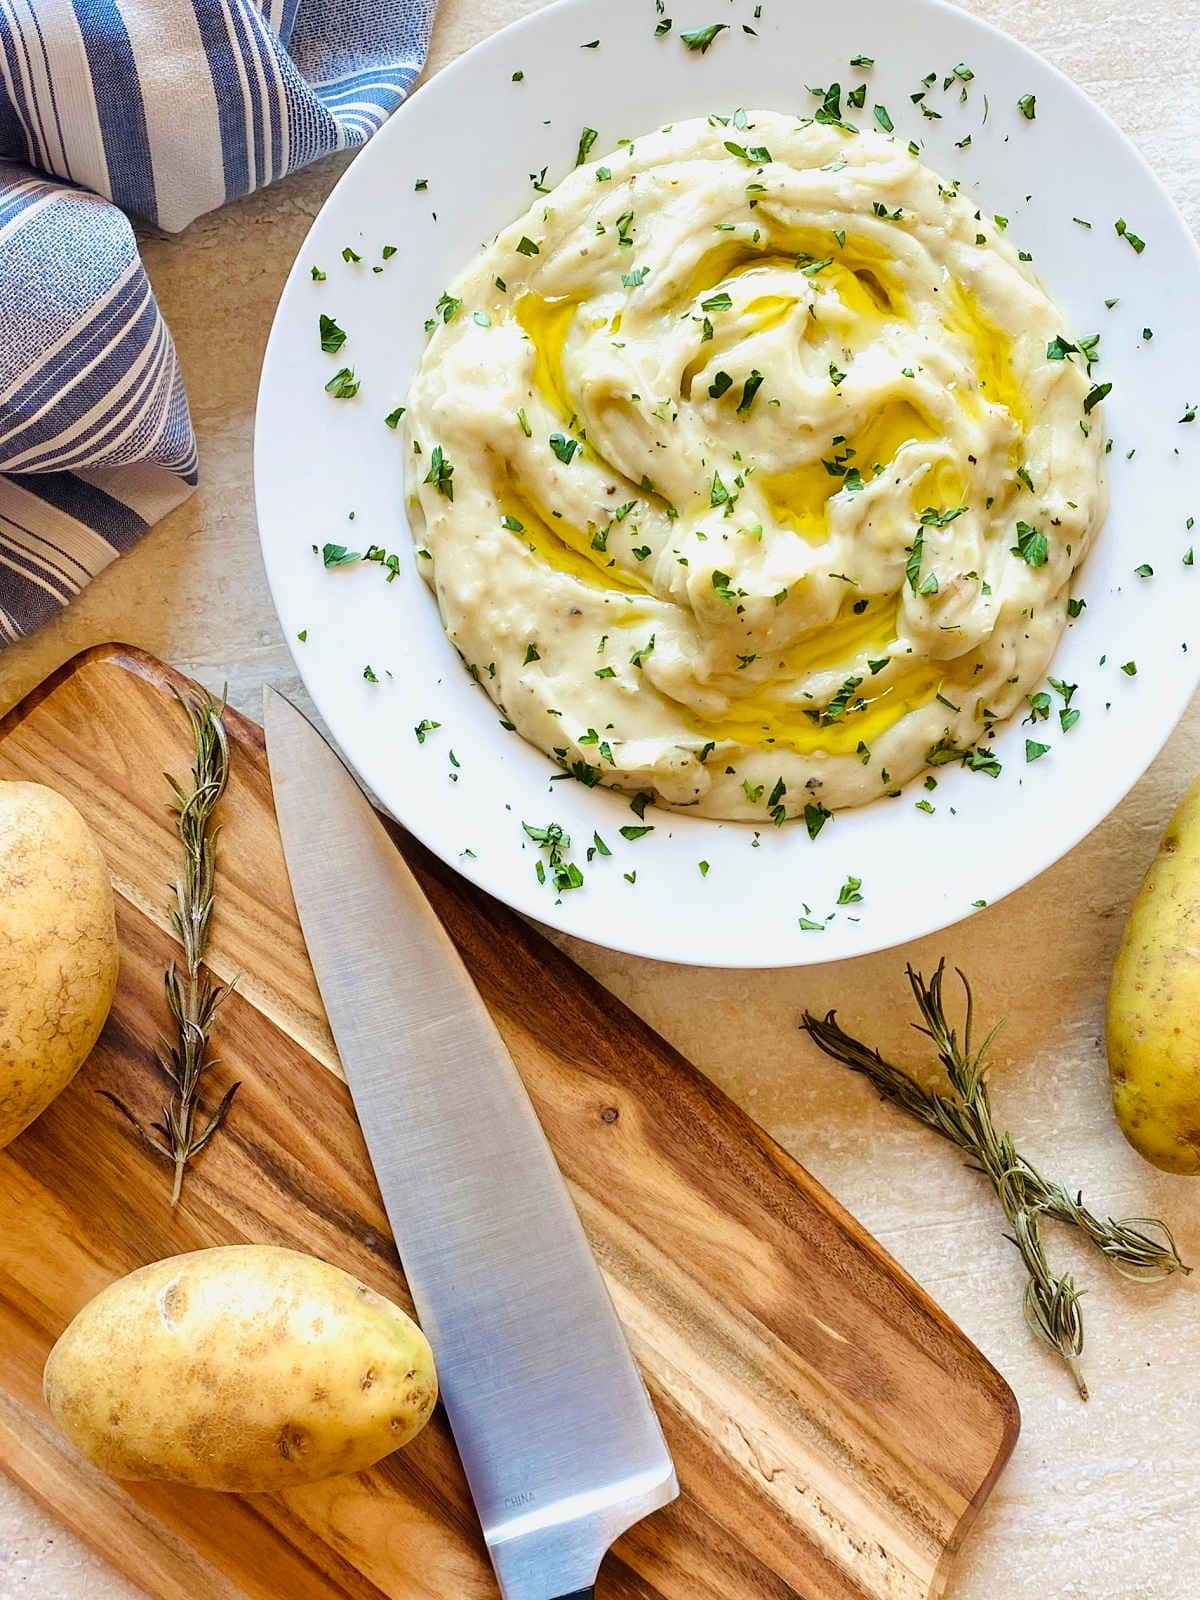 best whole30 mashed potatoes - Mouthwatering Thanksgiving Menu Ideas